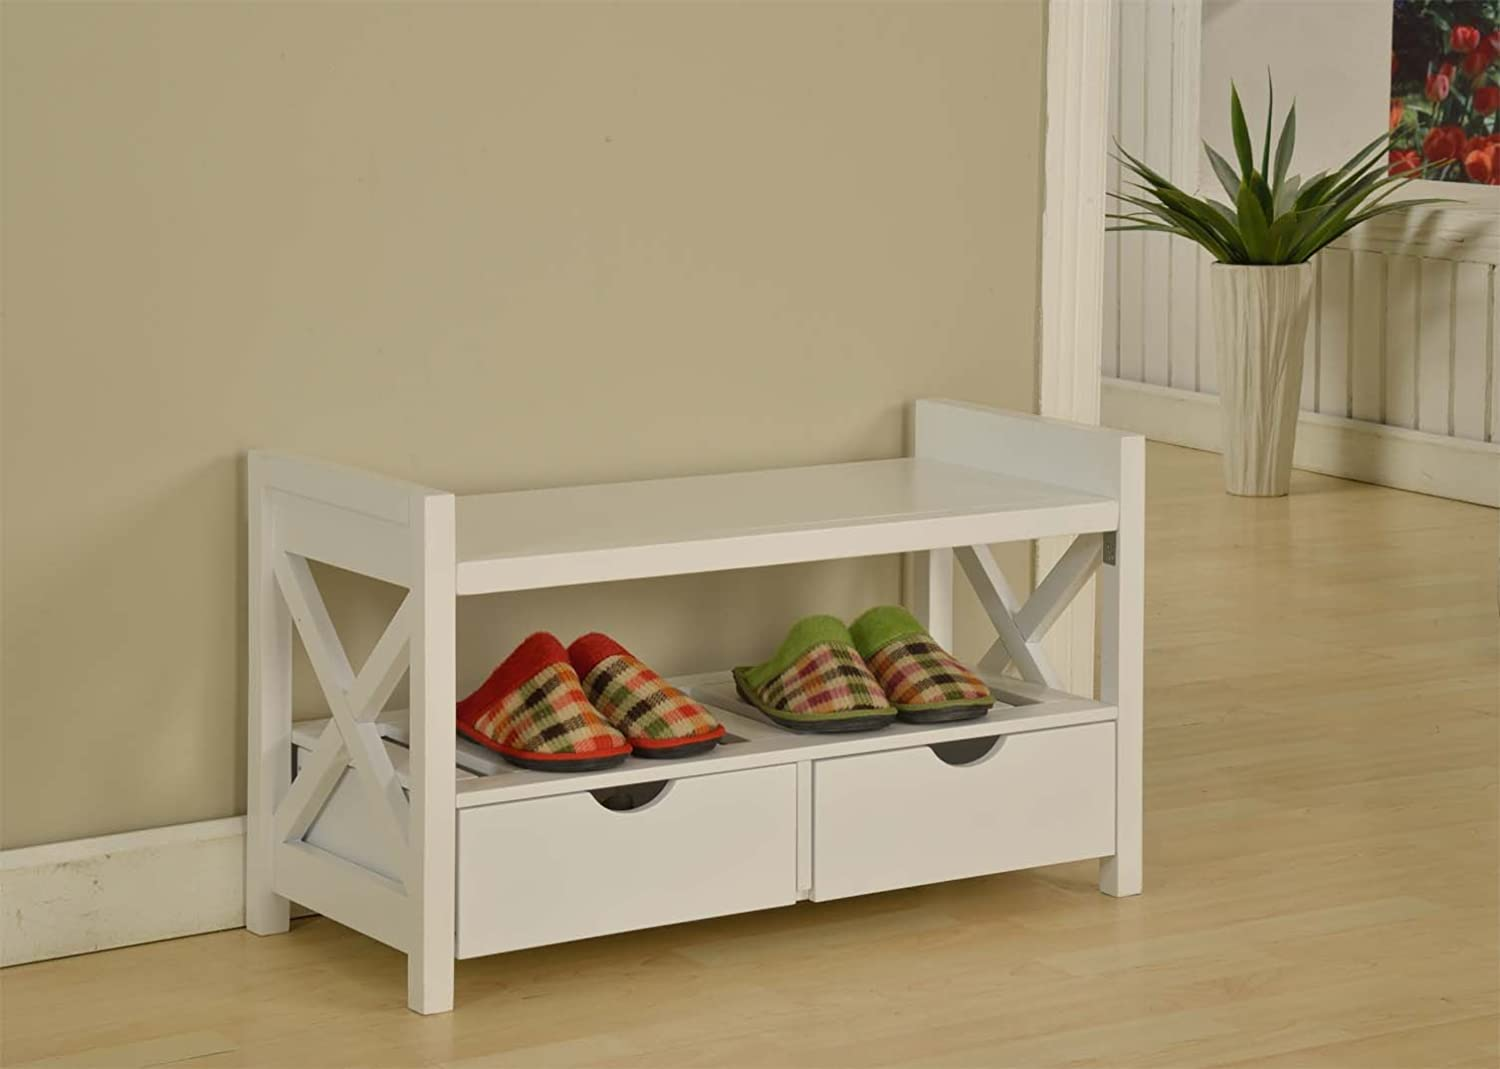 Kings Brand White Finish Wood Shoe Storage Bench With ...